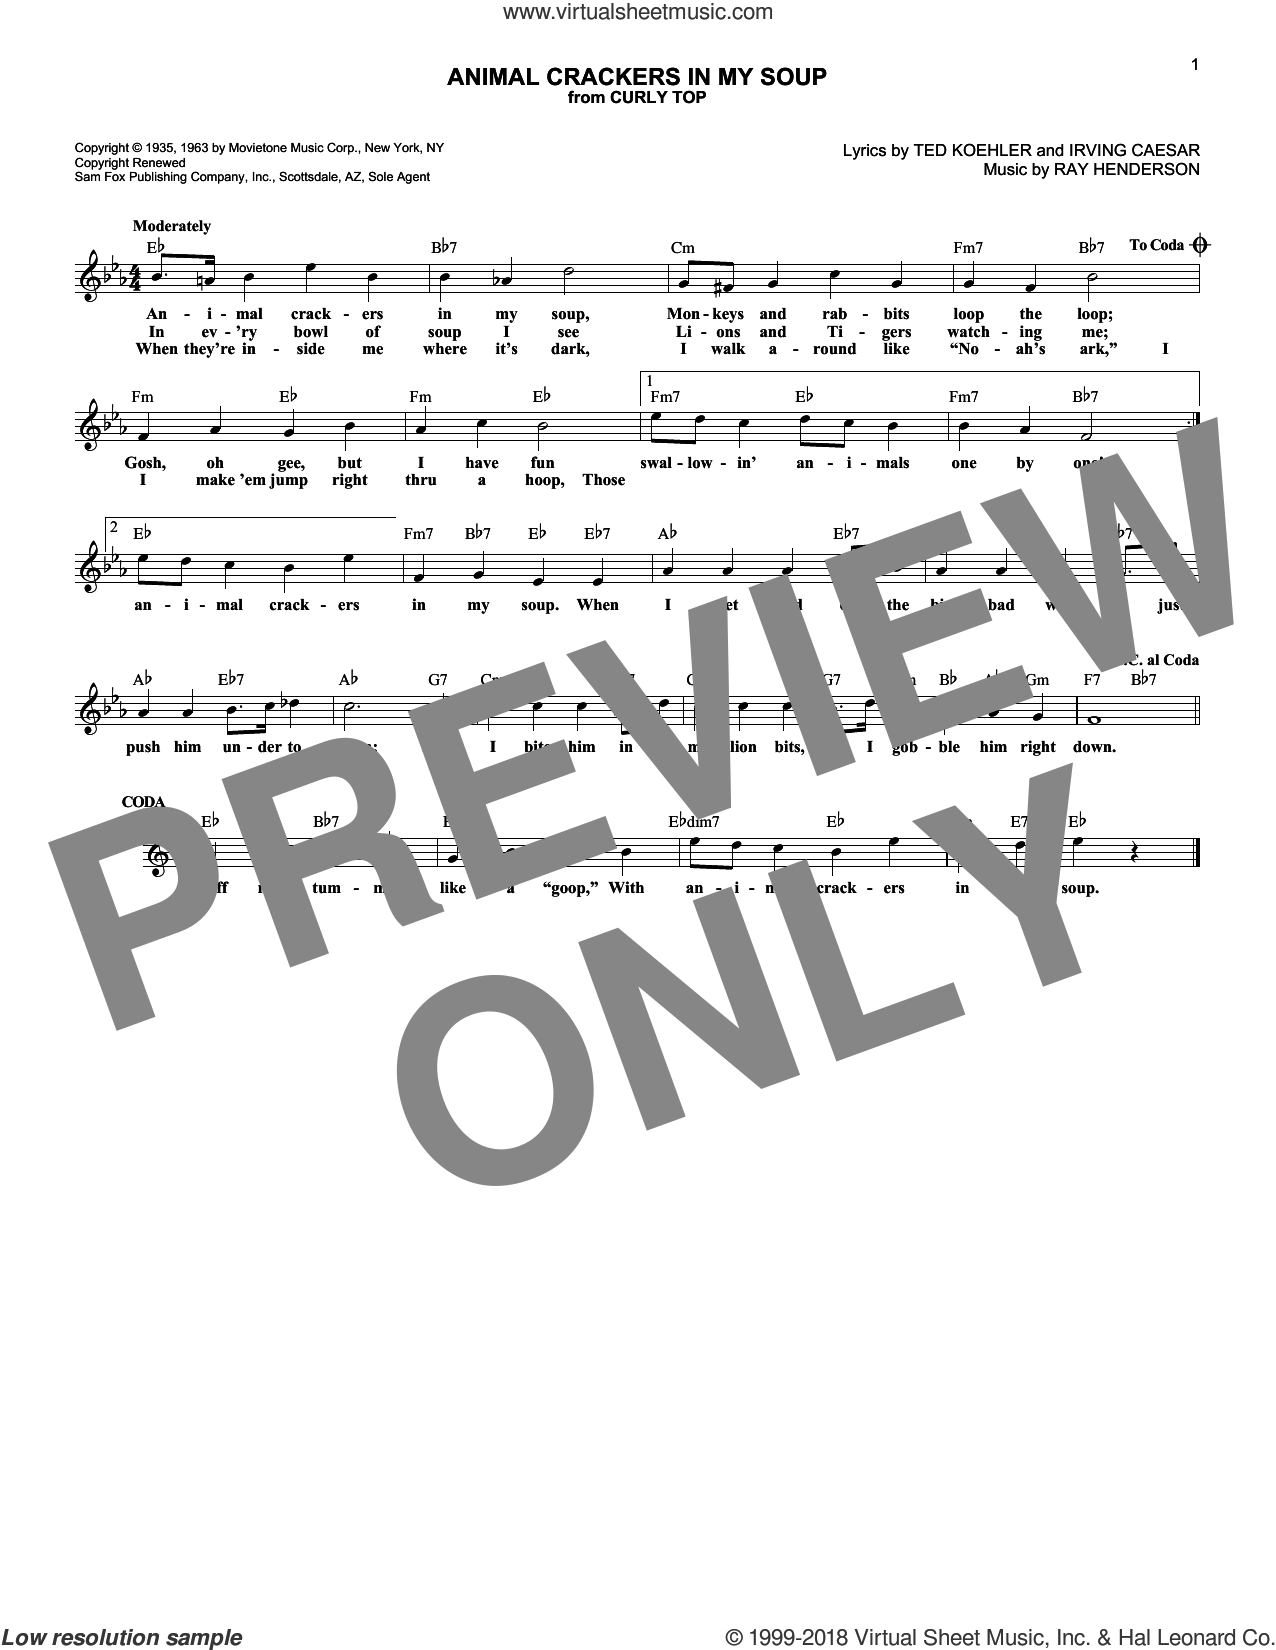 Animal Crackers In My Soup sheet music for voice and other instruments (fake book) by Irving Caesar, Ray Henderson and Ted Koehler, intermediate skill level